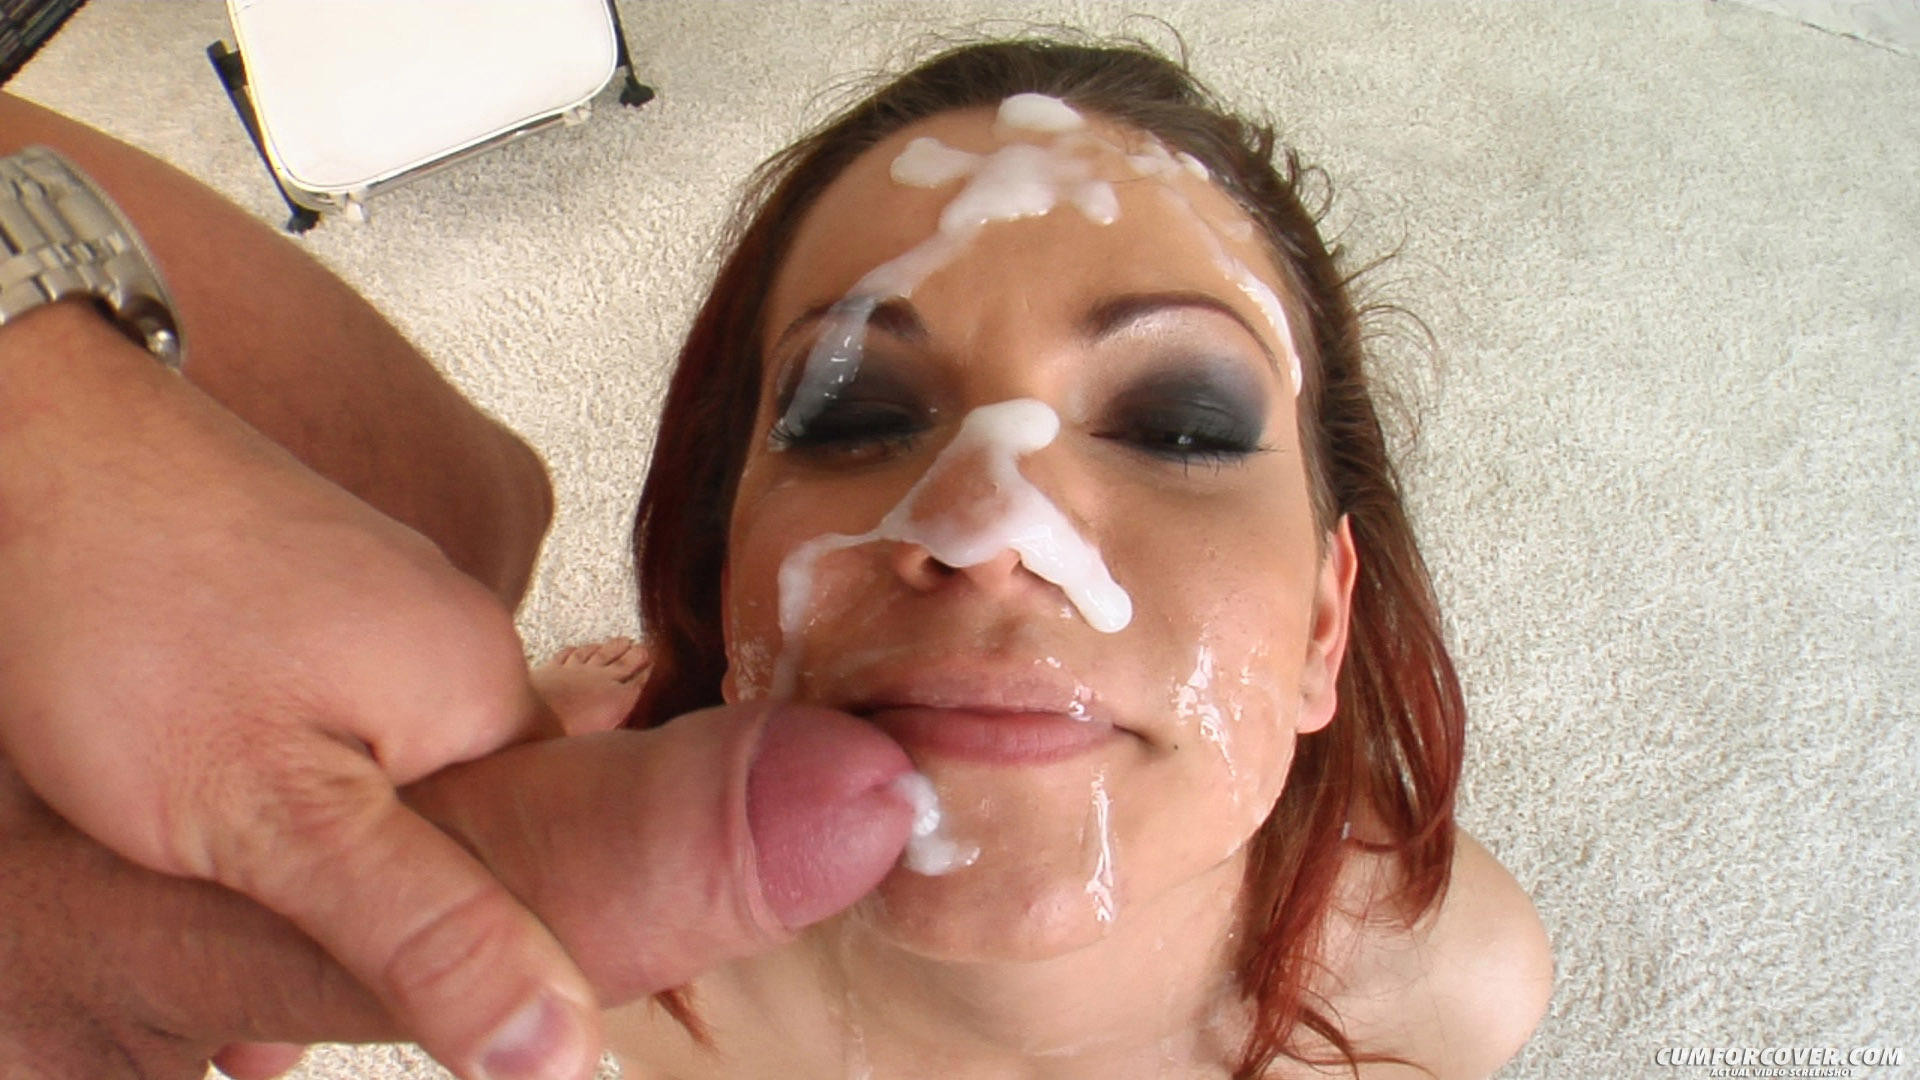 Swimsuit Asian Teen Facial Cumshot 81